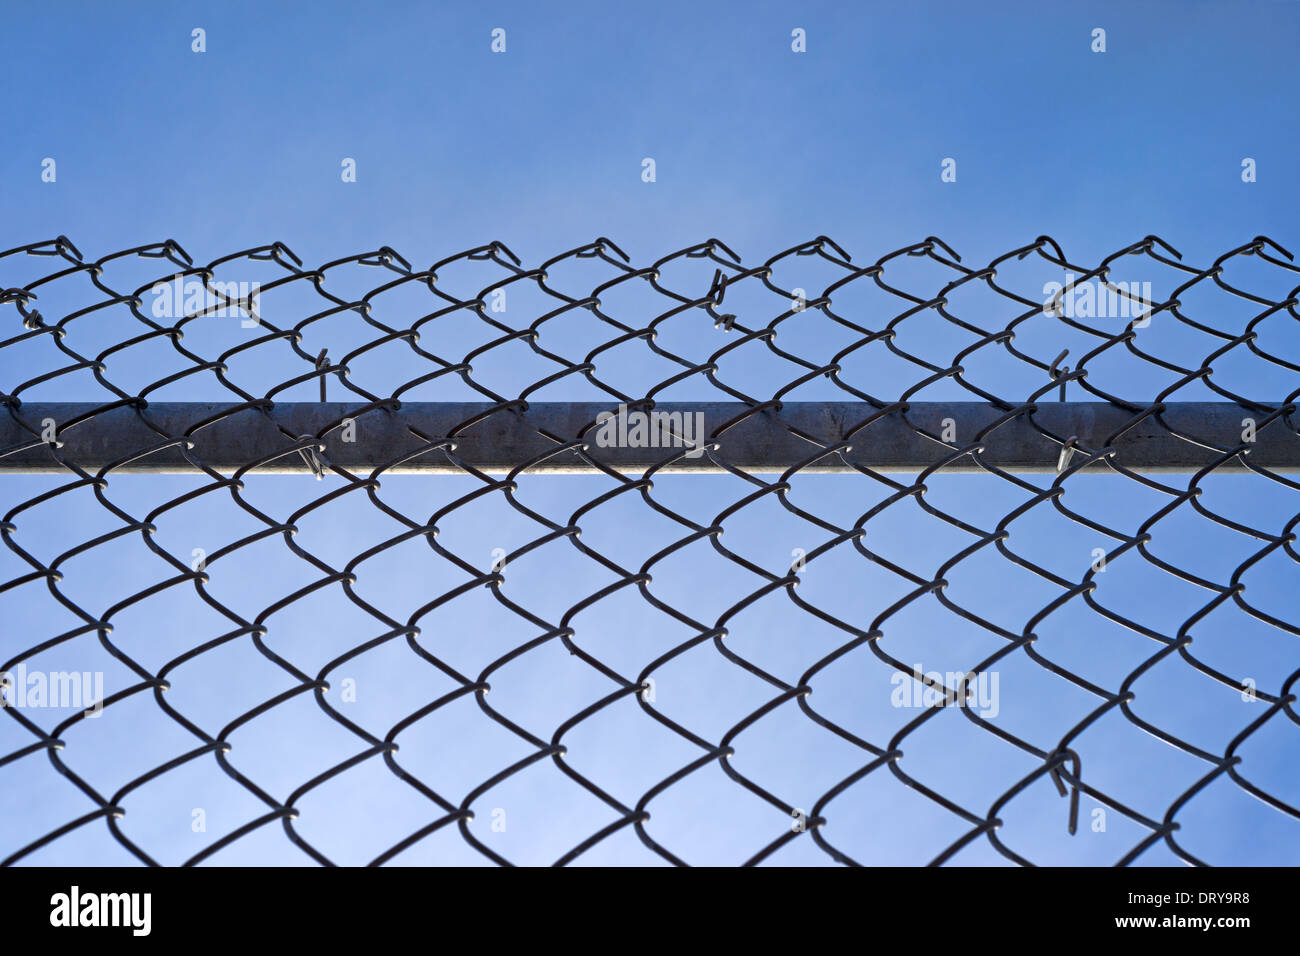 A chain link fence with a sturdy bar behind the mesh and fastenings against a blue sky with wispy clouds. - Stock Image